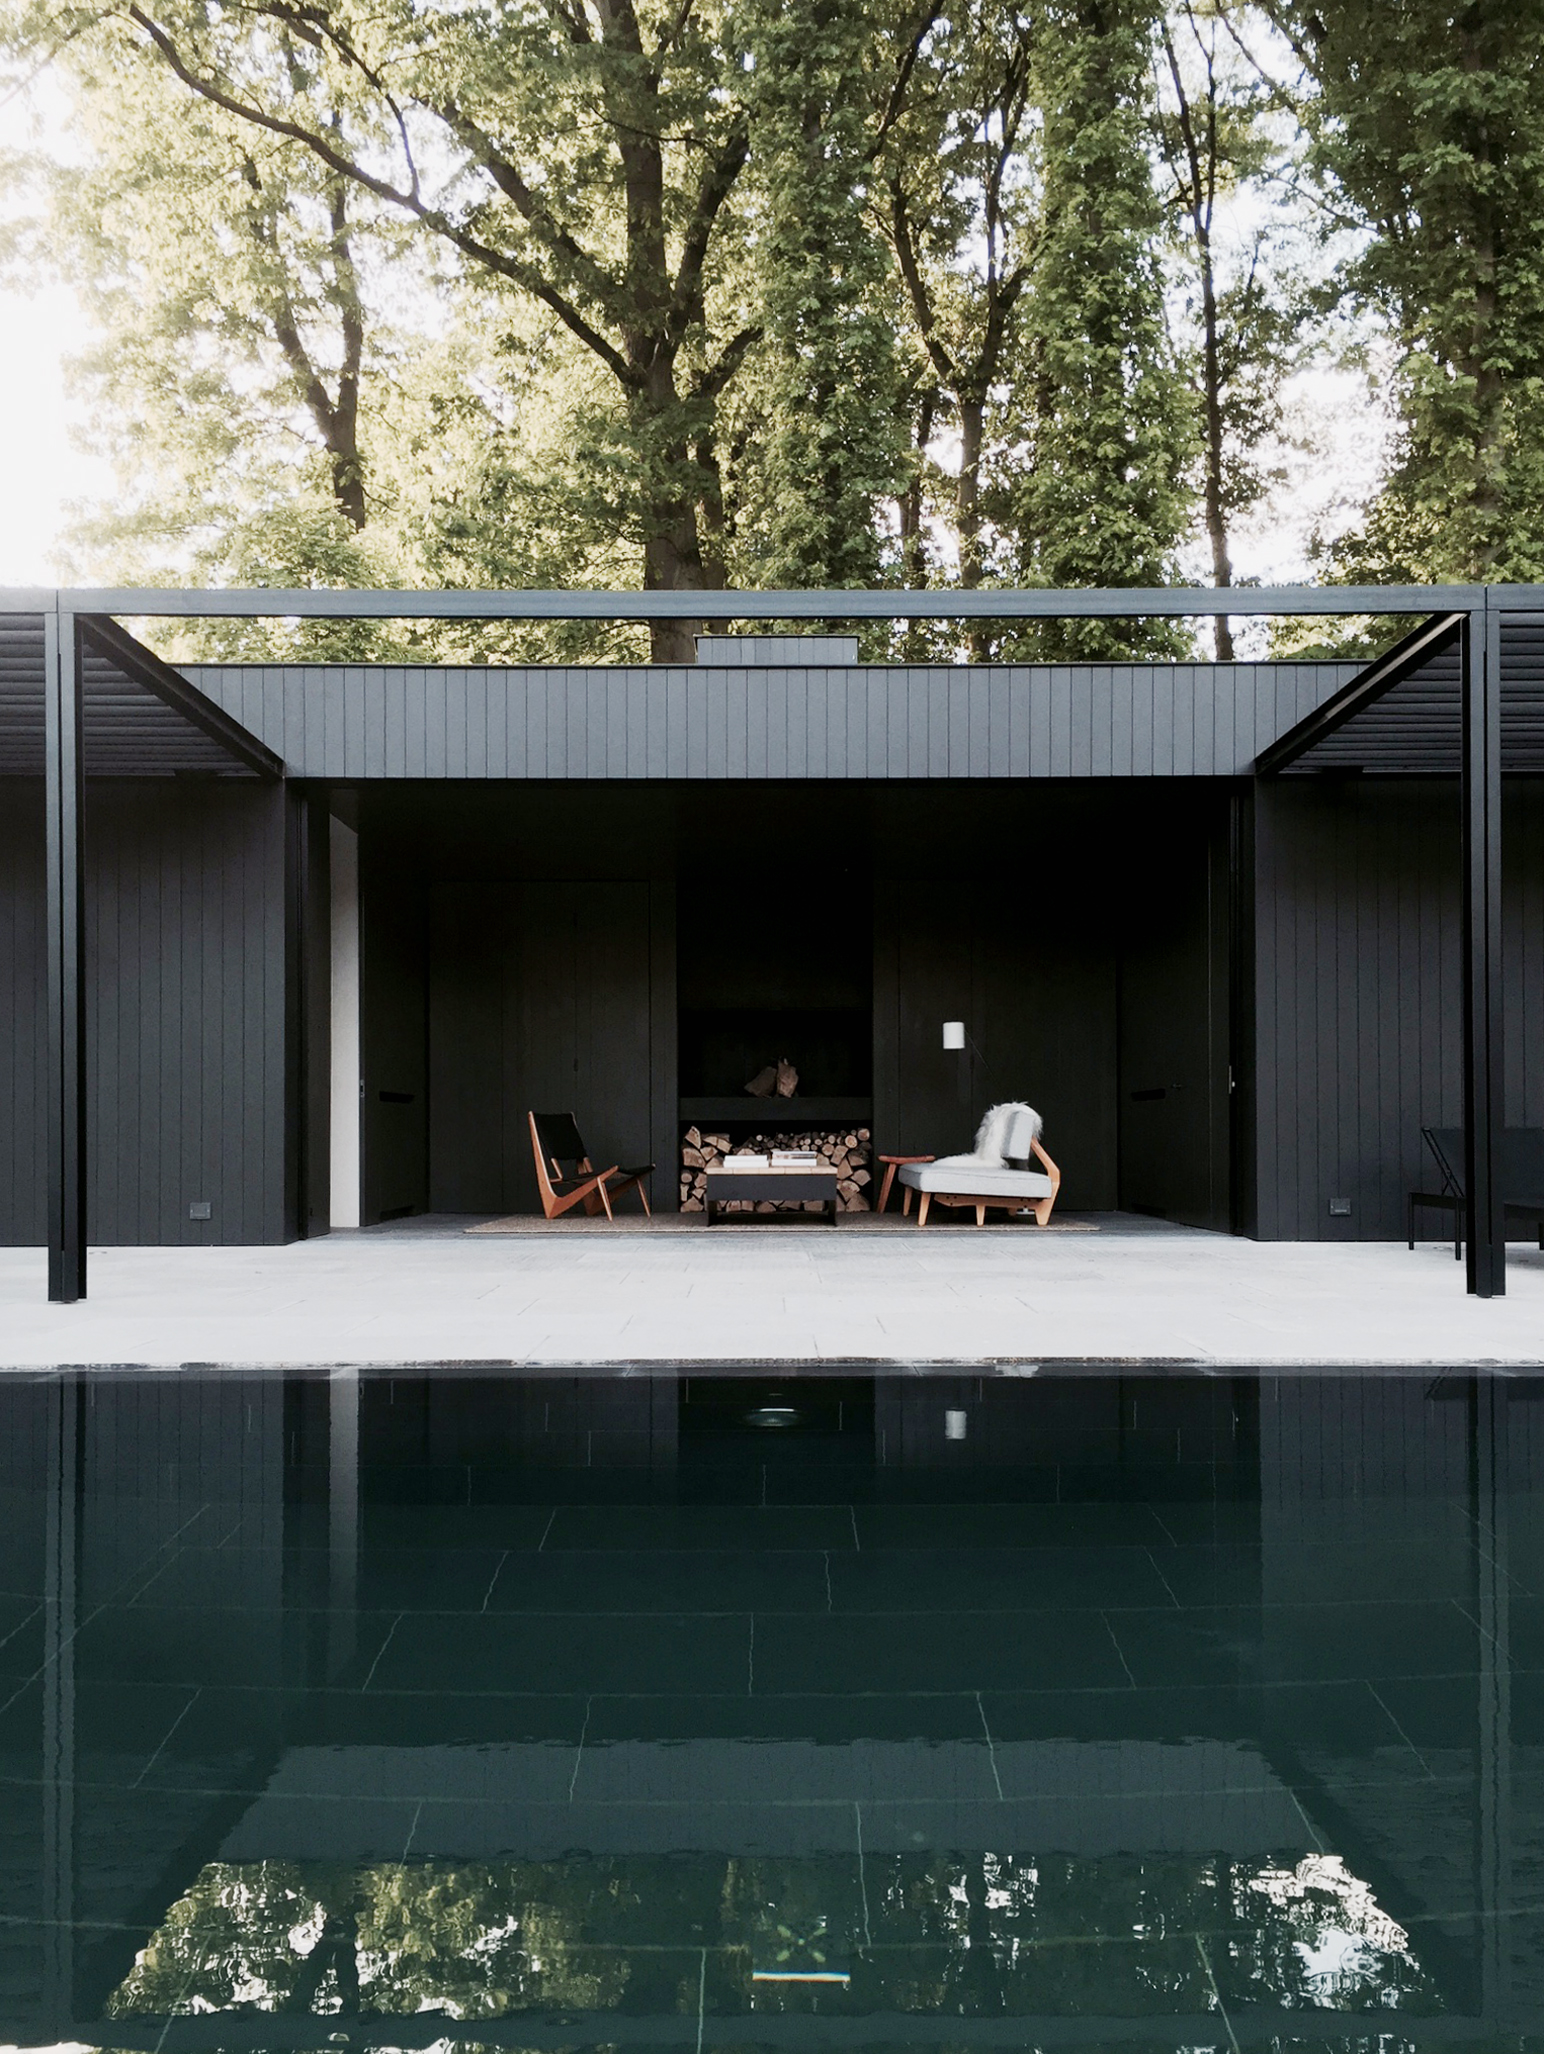 COPP_POOLHOUSE_01.jpg